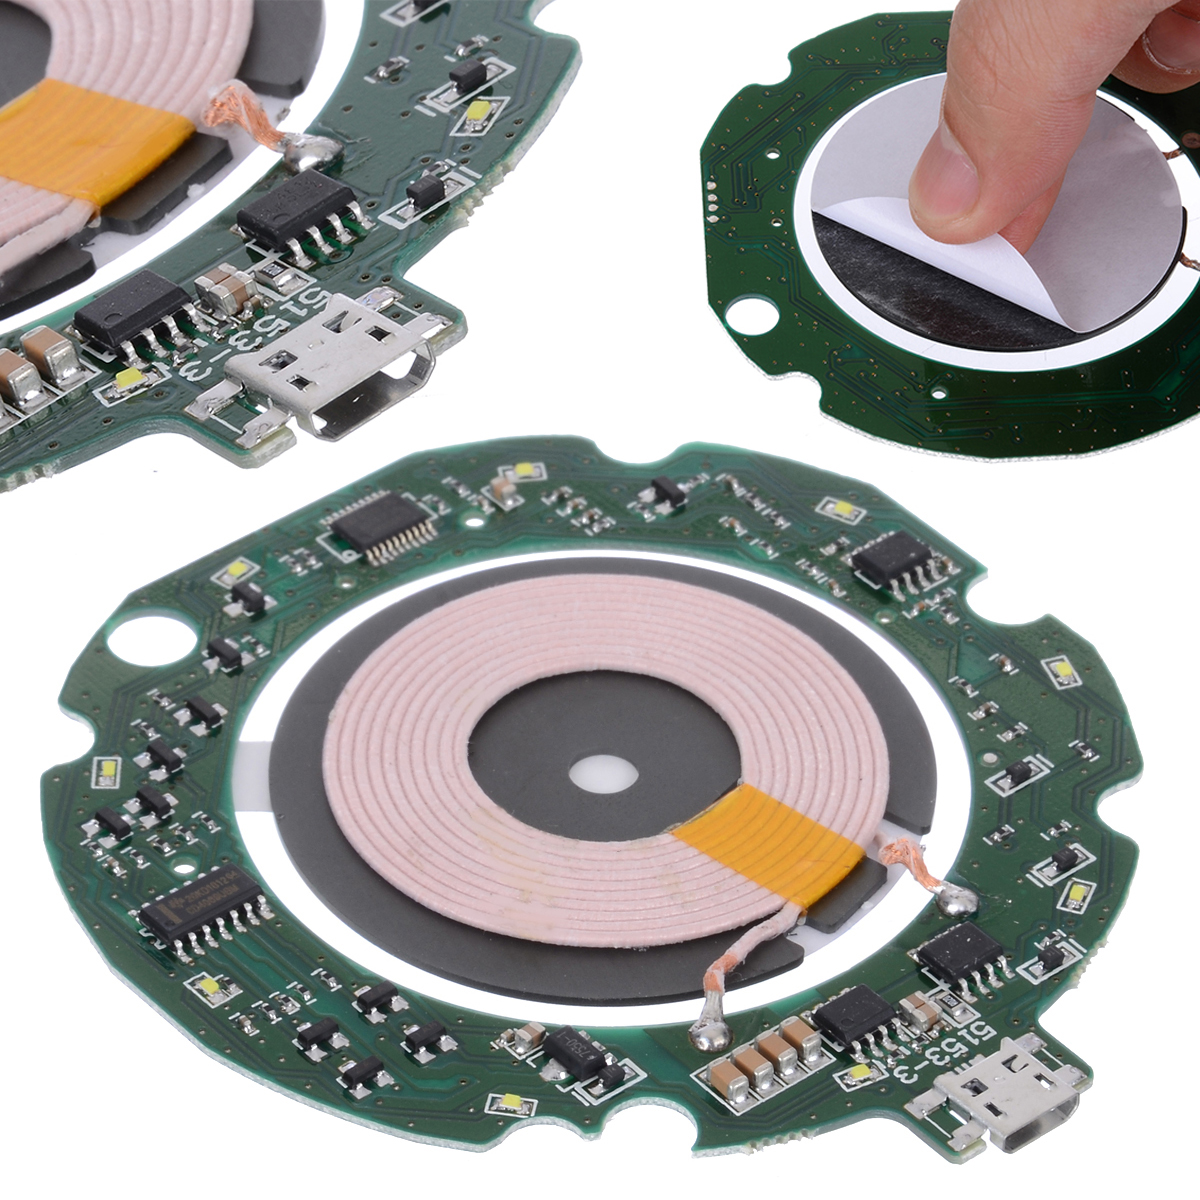 High Quality Standard 10W Qi Fast Wireless Charger Module Transmitter PCBA Circuit Board + Coil DIY Charging